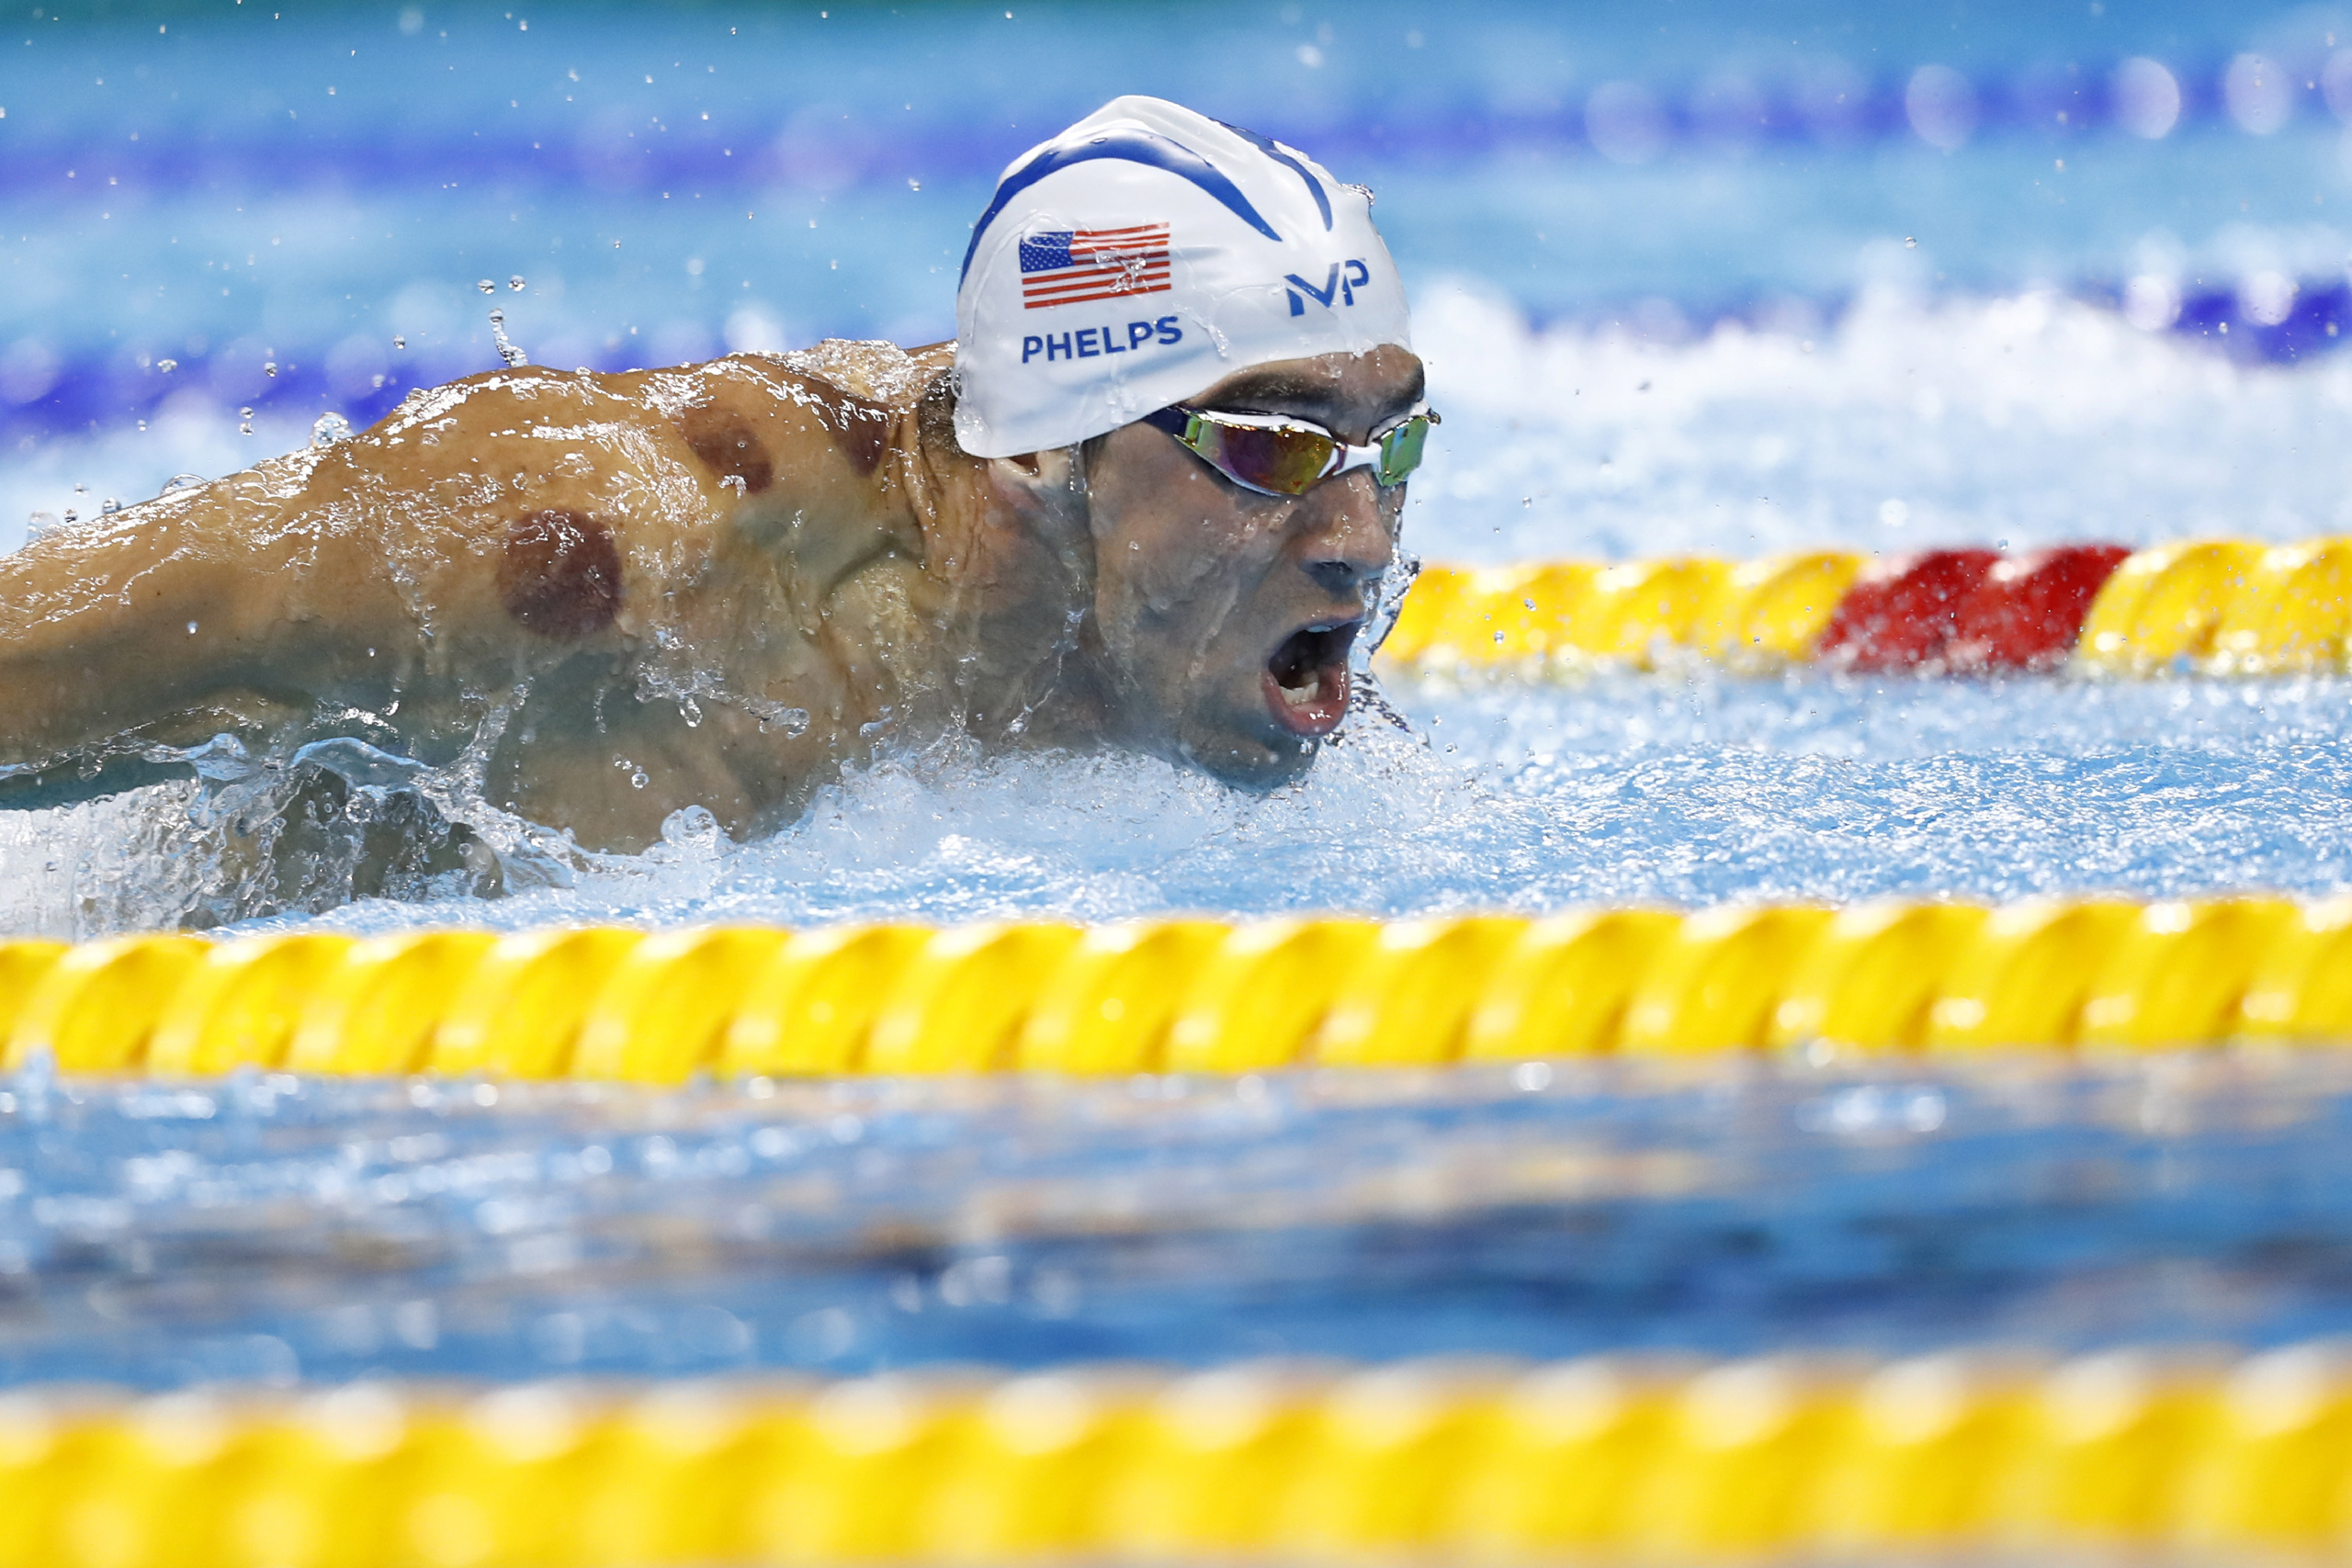 Michael Phelps competes in a men's 200-m butterfly heat during the swimming event at the Rio 2016 Olympic Games at the Olympic Aquatics Stadium in Rio de Janeiro on Aug. 8, 2016